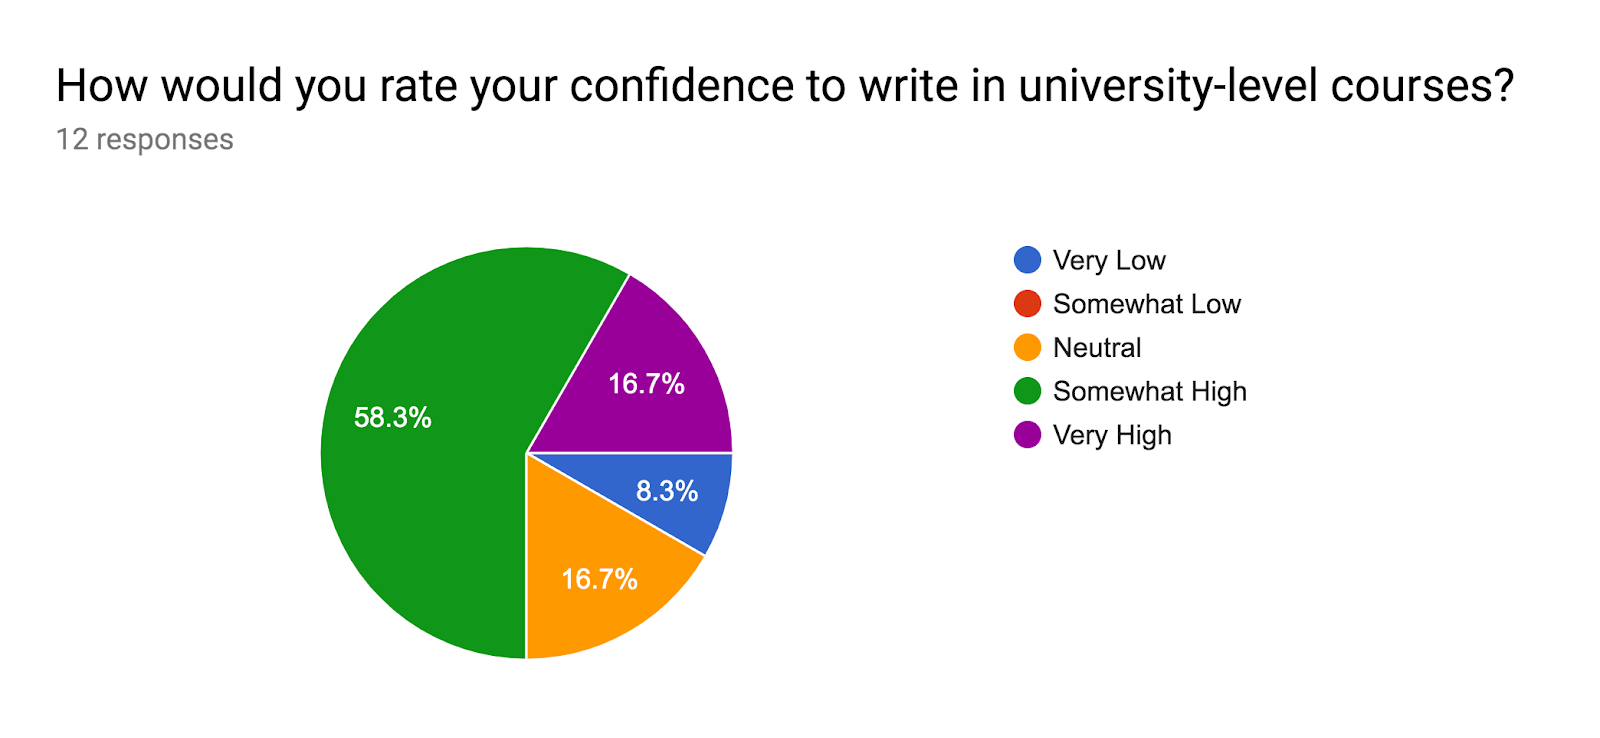 Forms response chart. Question title: How would you rate your confidence to write in university-level courses?. Number of responses: 12 responses.